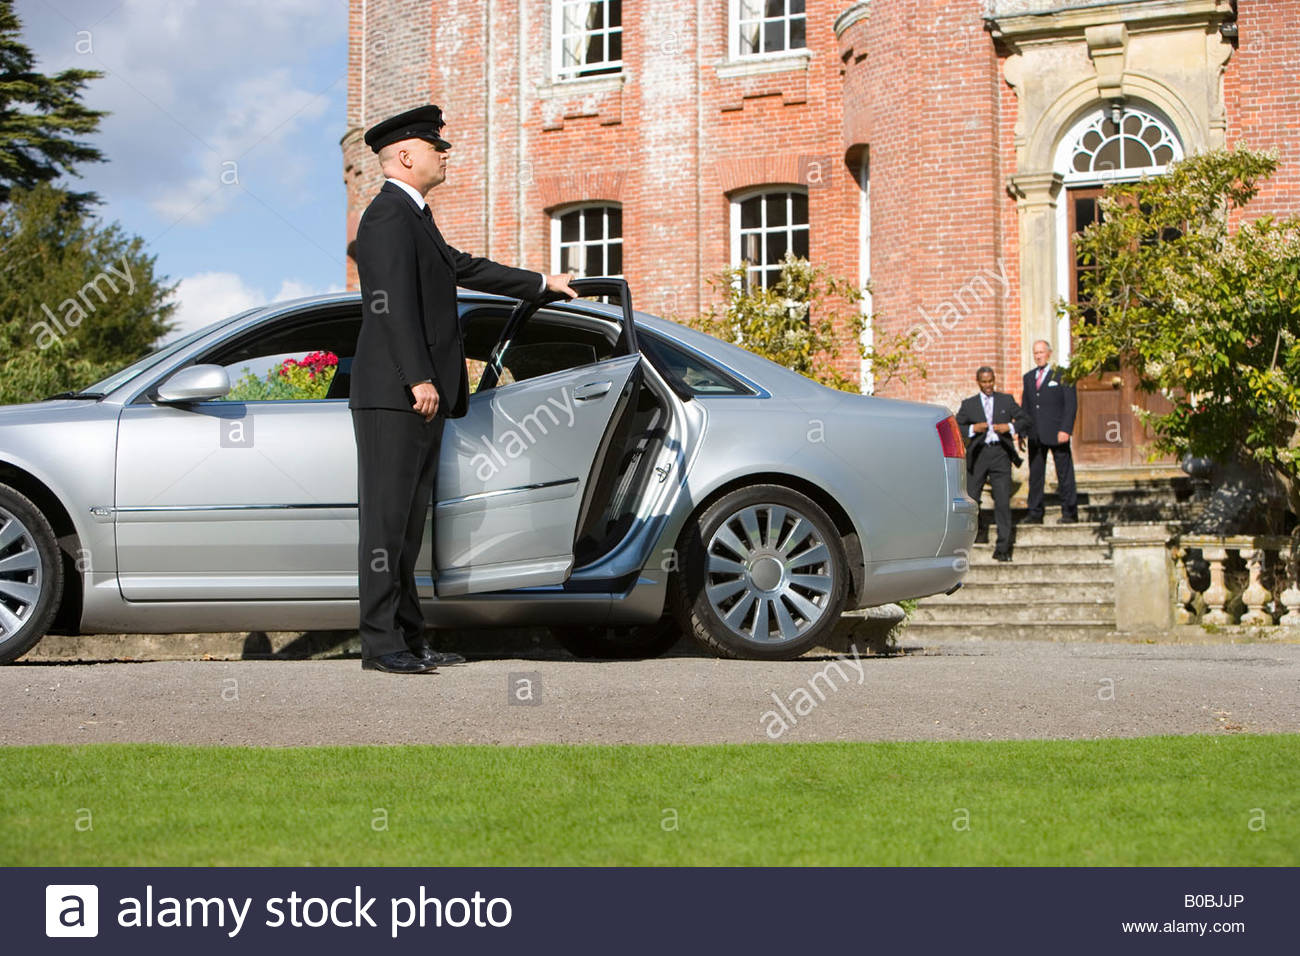 Chauffeur Holding Open Door Of Car By Manor House Businessmen In